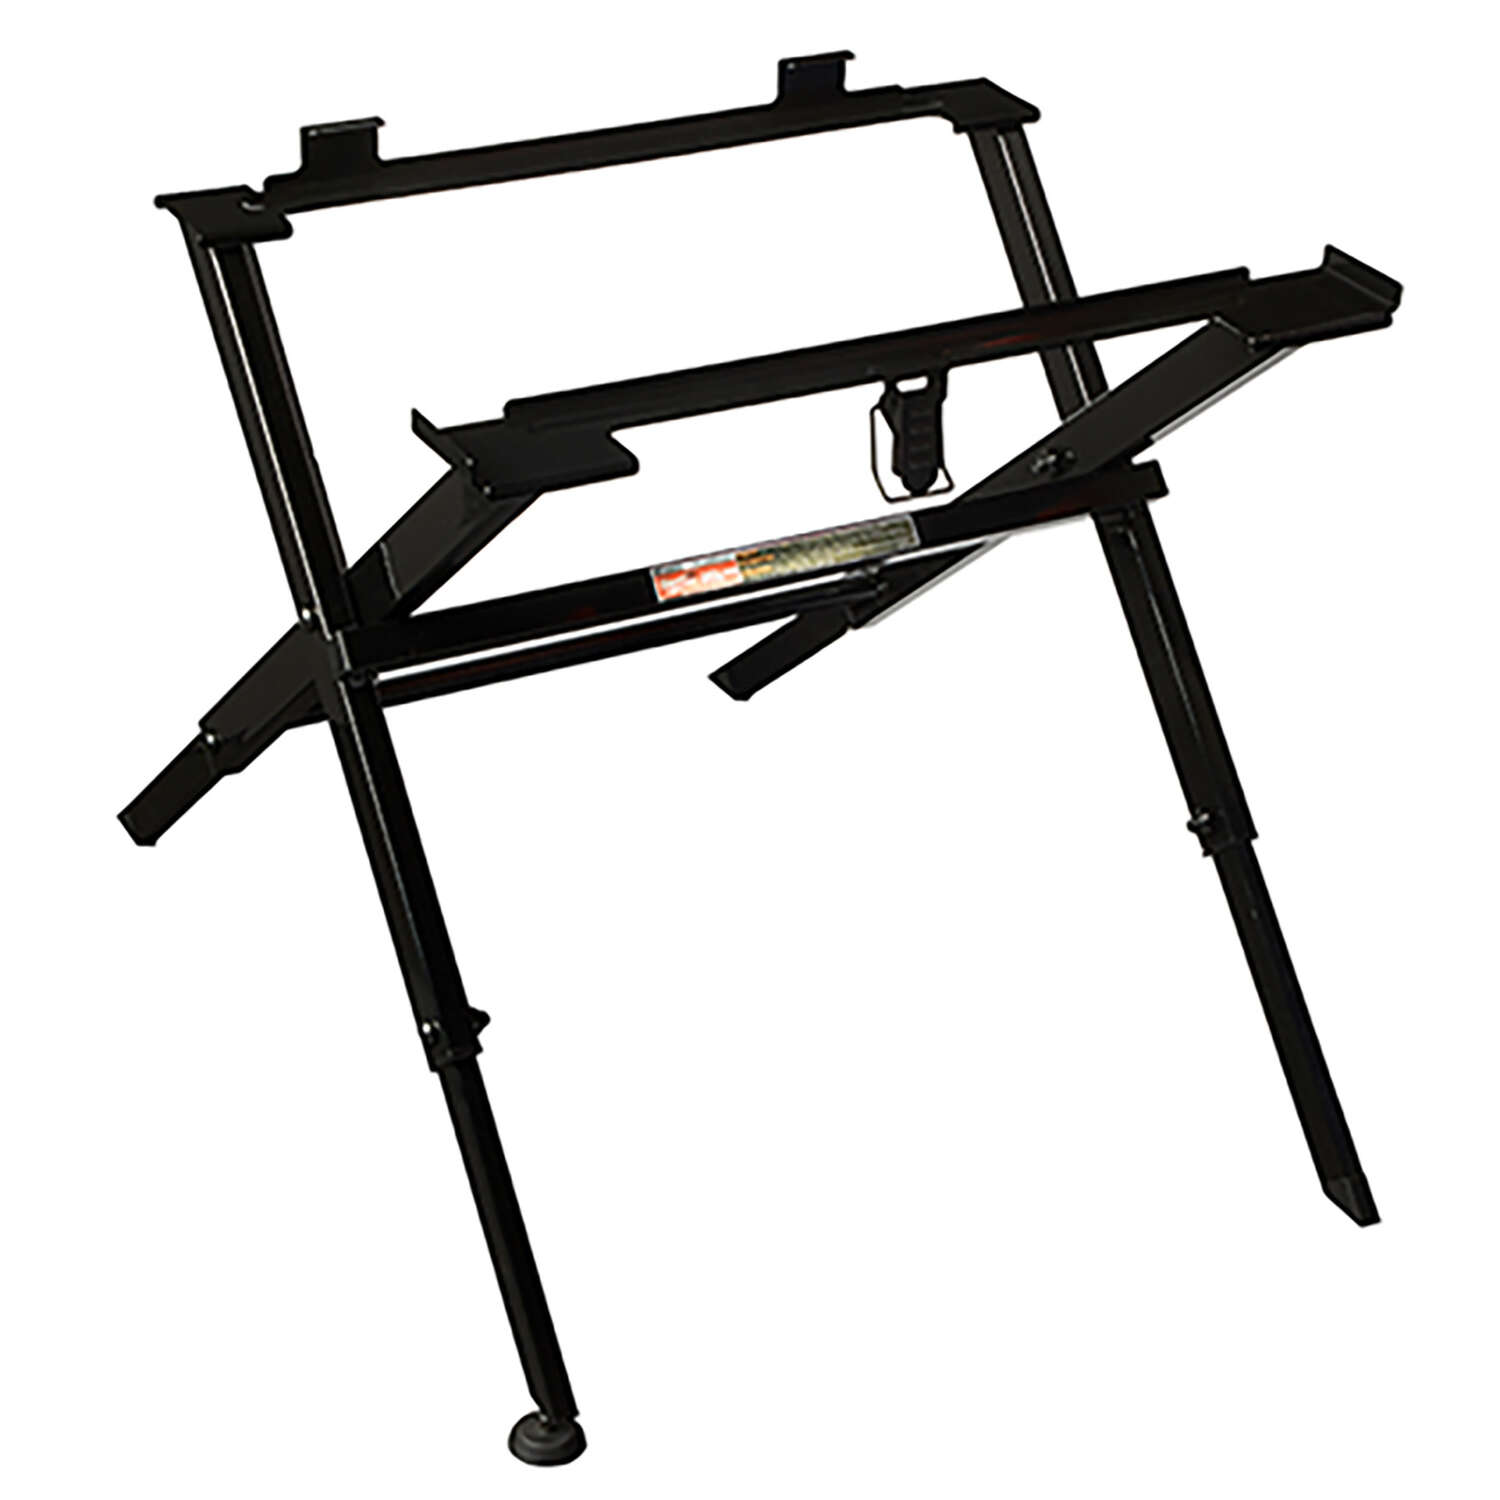 Milwaukee  Steel  17.75 in. L x 20.5 in. H x 23 in. W Folding  Table Saw Stand  Black  1 pc.